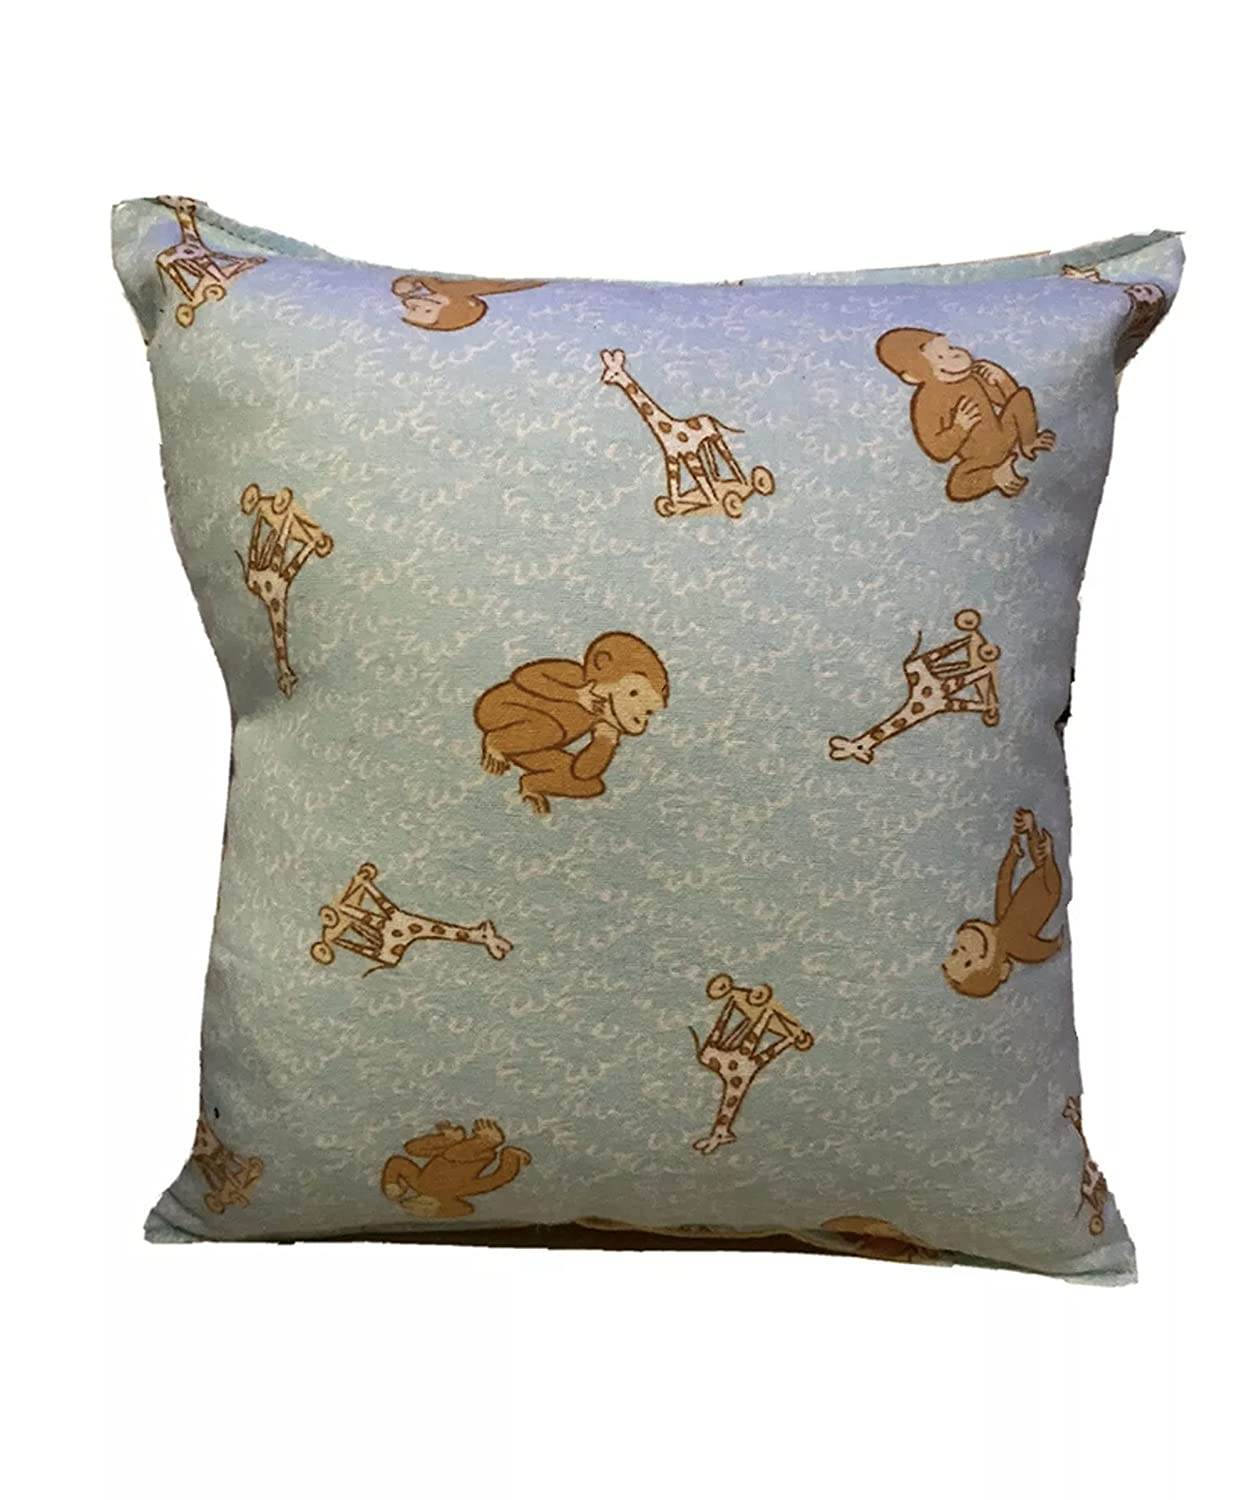 Curious George Sales for sale Pillow Monkey Classic Pillows Great interest All Our Are